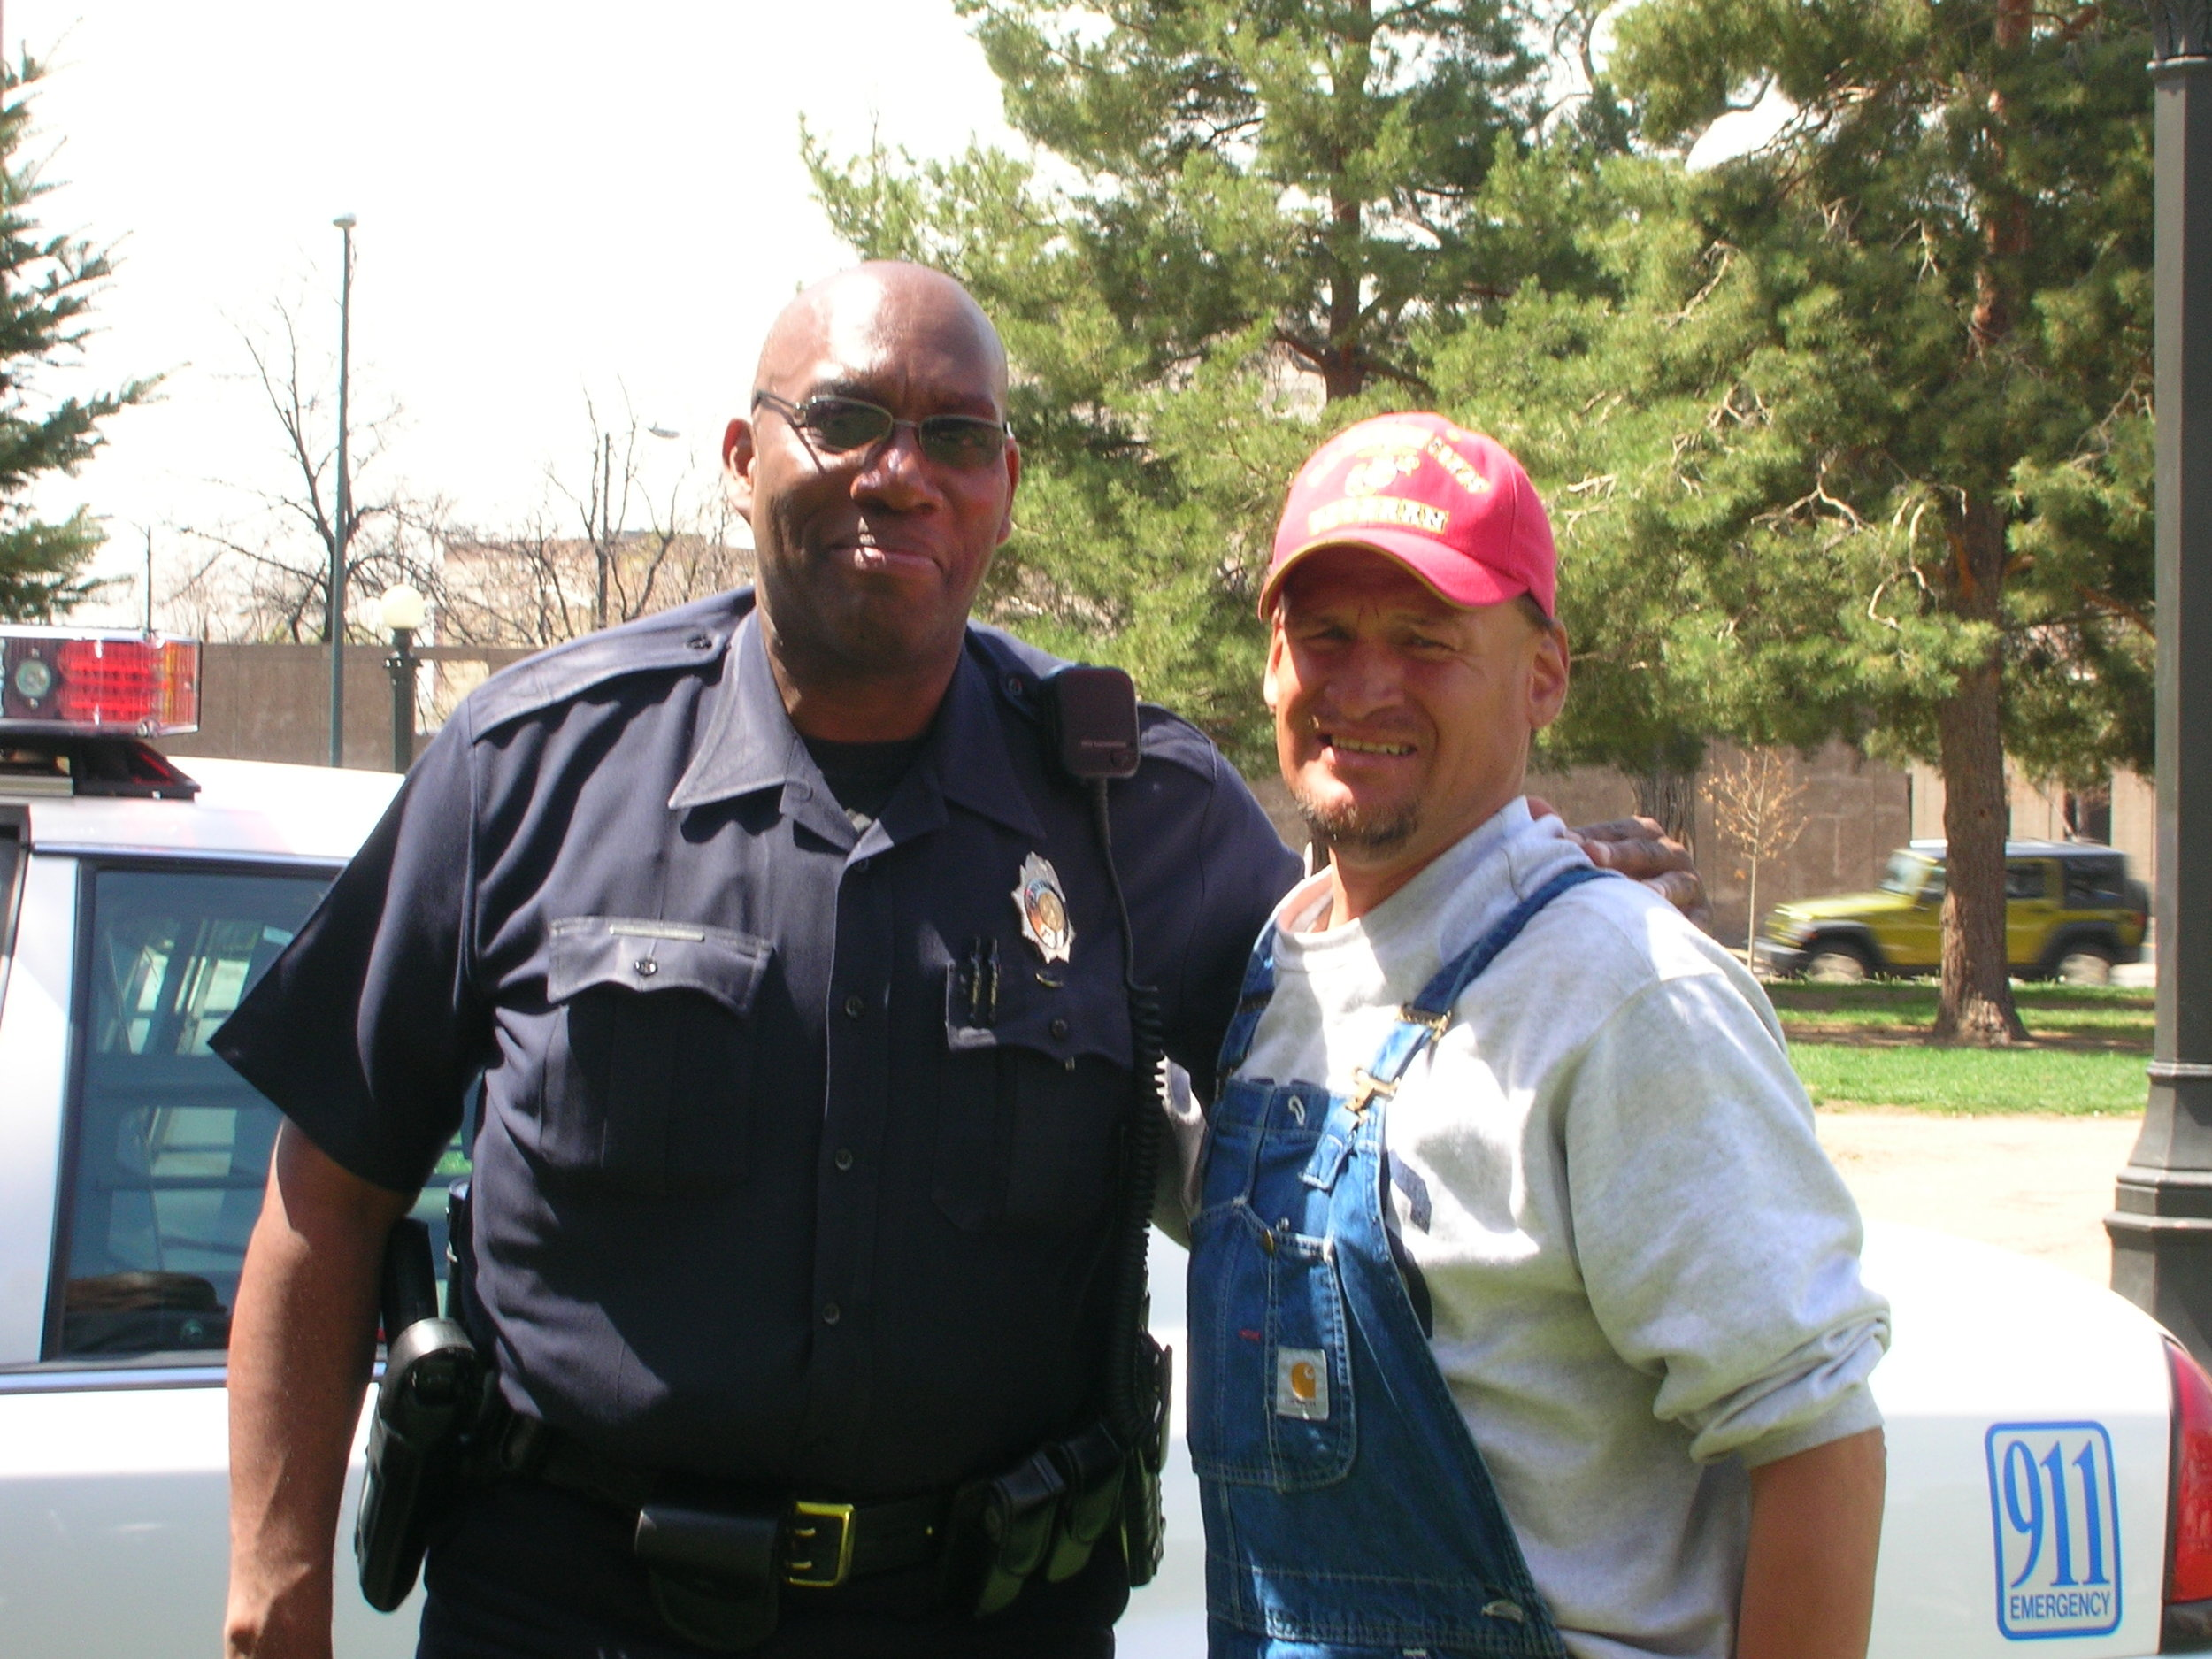 A Denver Police officer Thanks R2K for our kindness towards this man.JPG